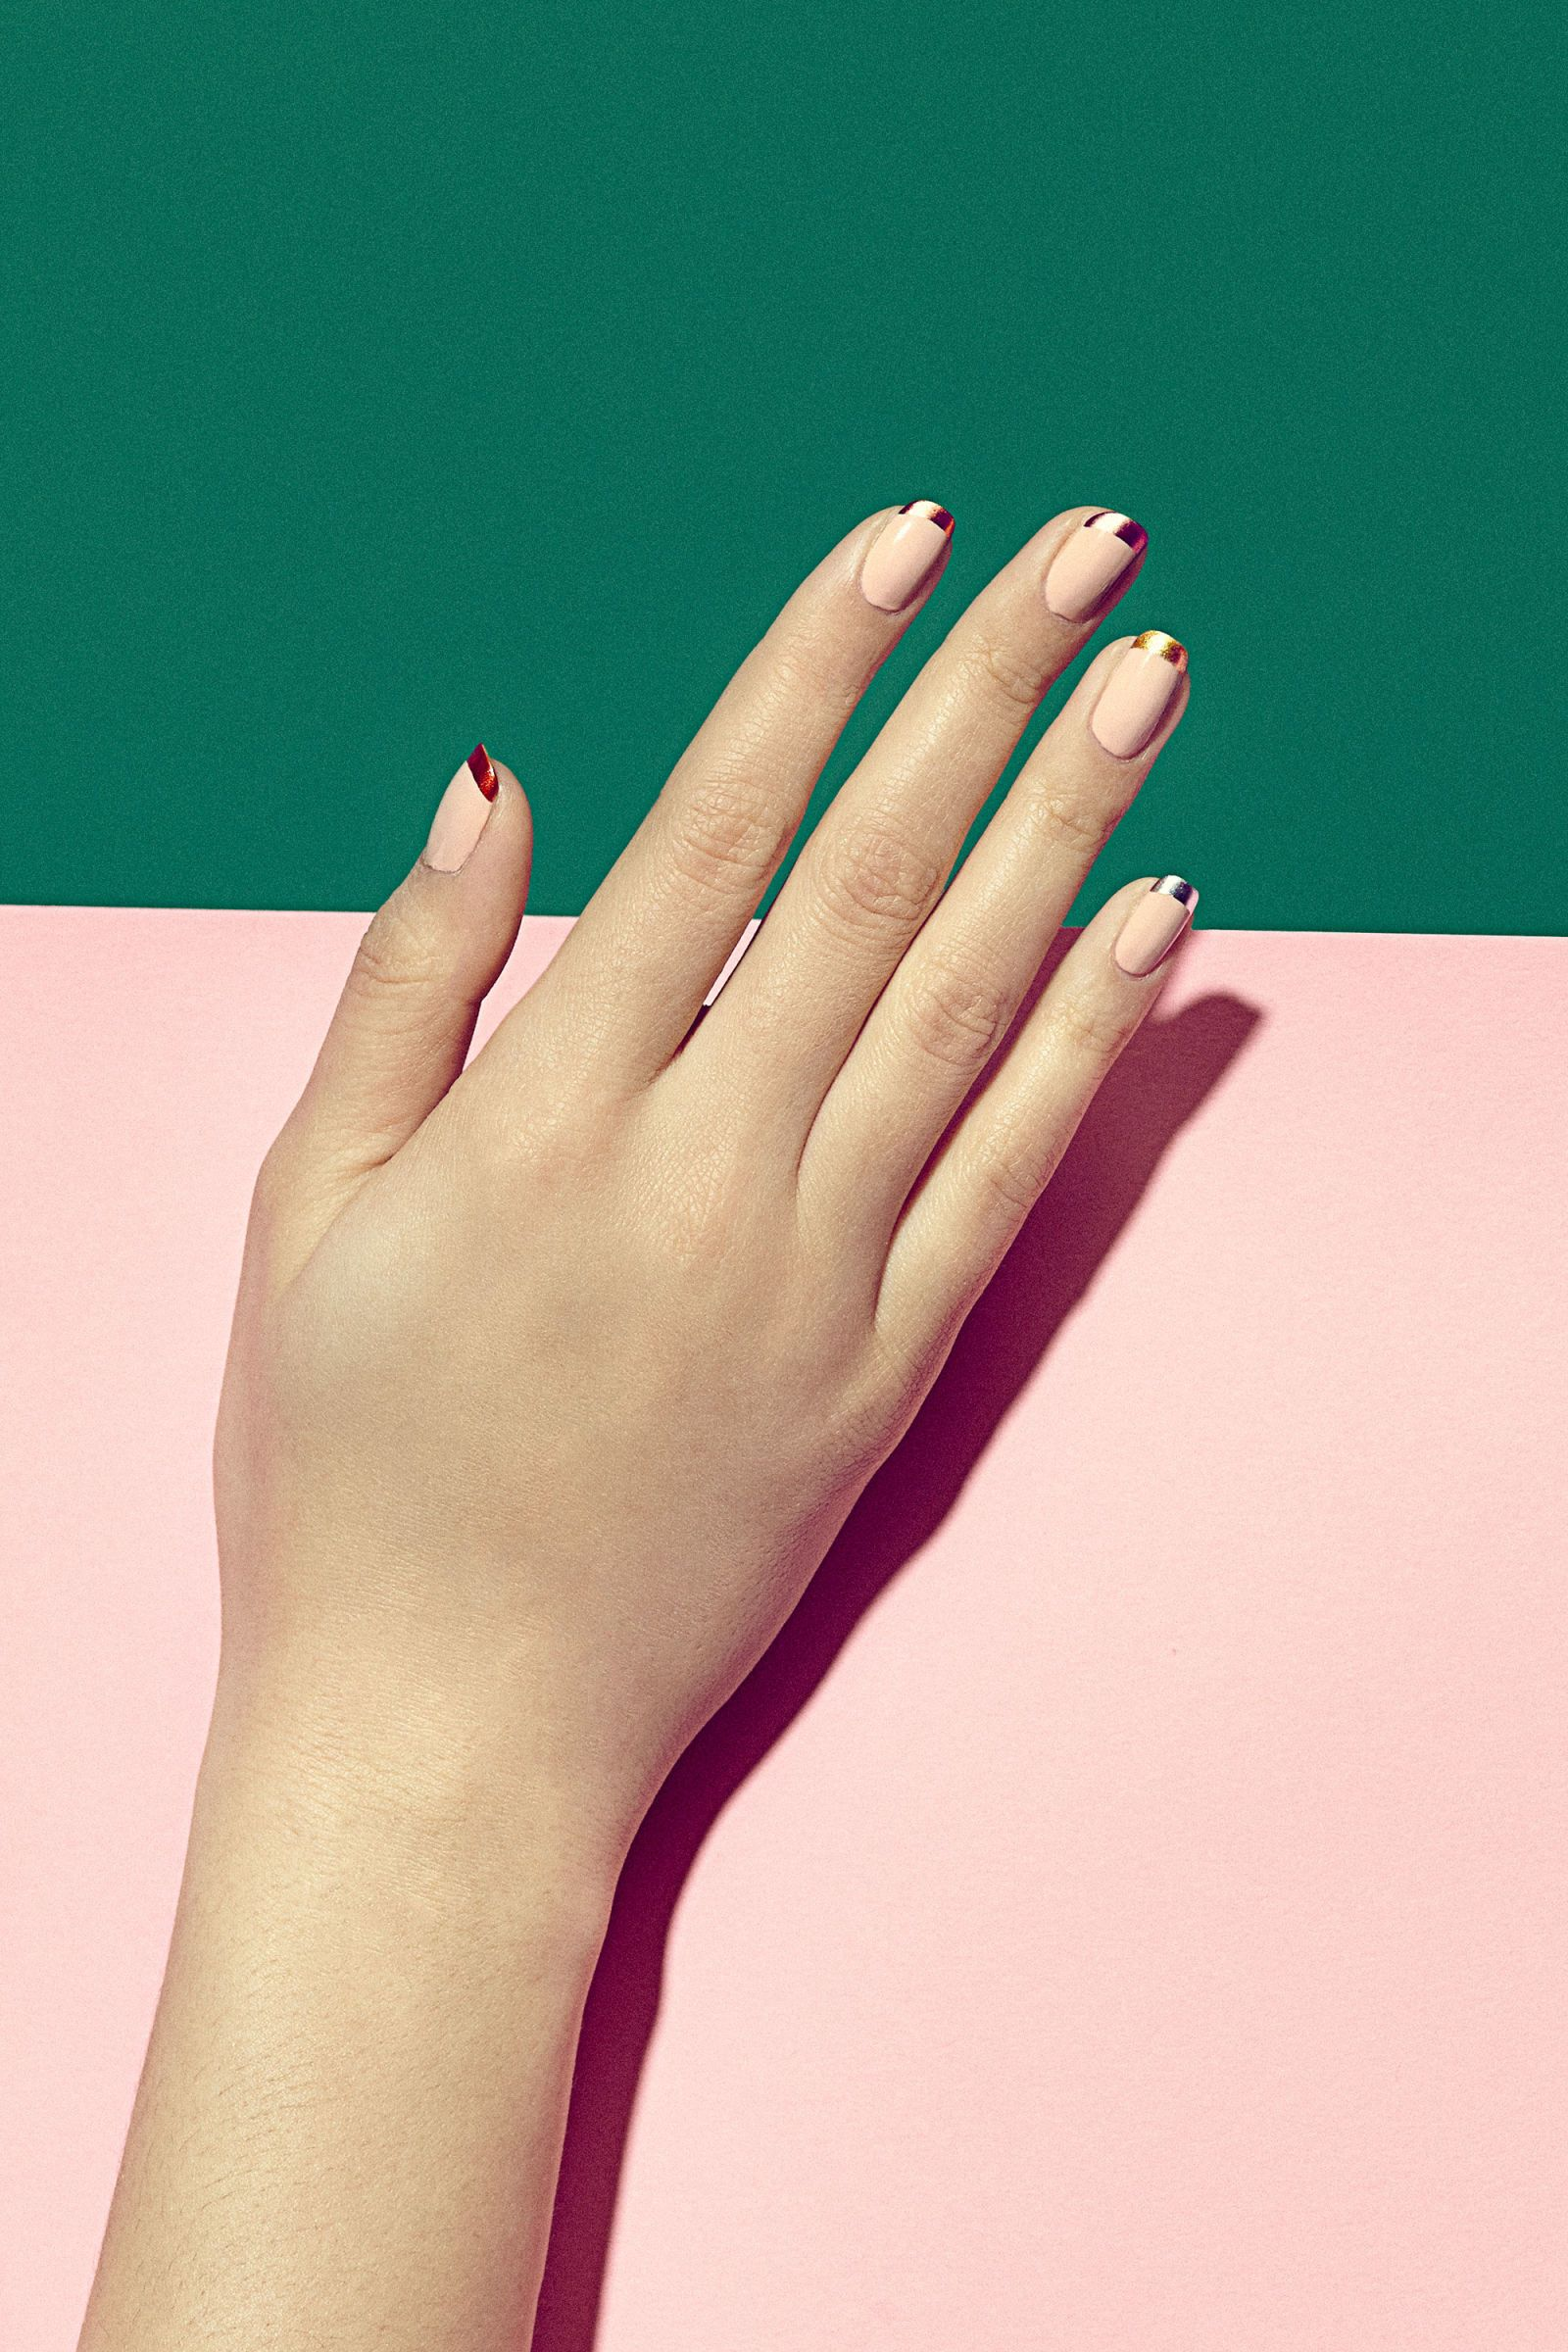 """""""It's a spin on the classic nude or French manicure but because the tips are in ombre metallics (or you can even just pick one metallic shade for all of the tips), it's on-trend without being too in your face,"""" says Kandalec. WHY YOU'LL LOVE IT: """"It's a juxtaposition of uber-feminine polish colors with some edginess from the reflective tips,"""" she says. """"The metallic tips make a nude manicure look more expensive, vibrant and luxe."""" THE PAINTBOX HOW-TO: 1. Polish the nail in two coats of the…"""